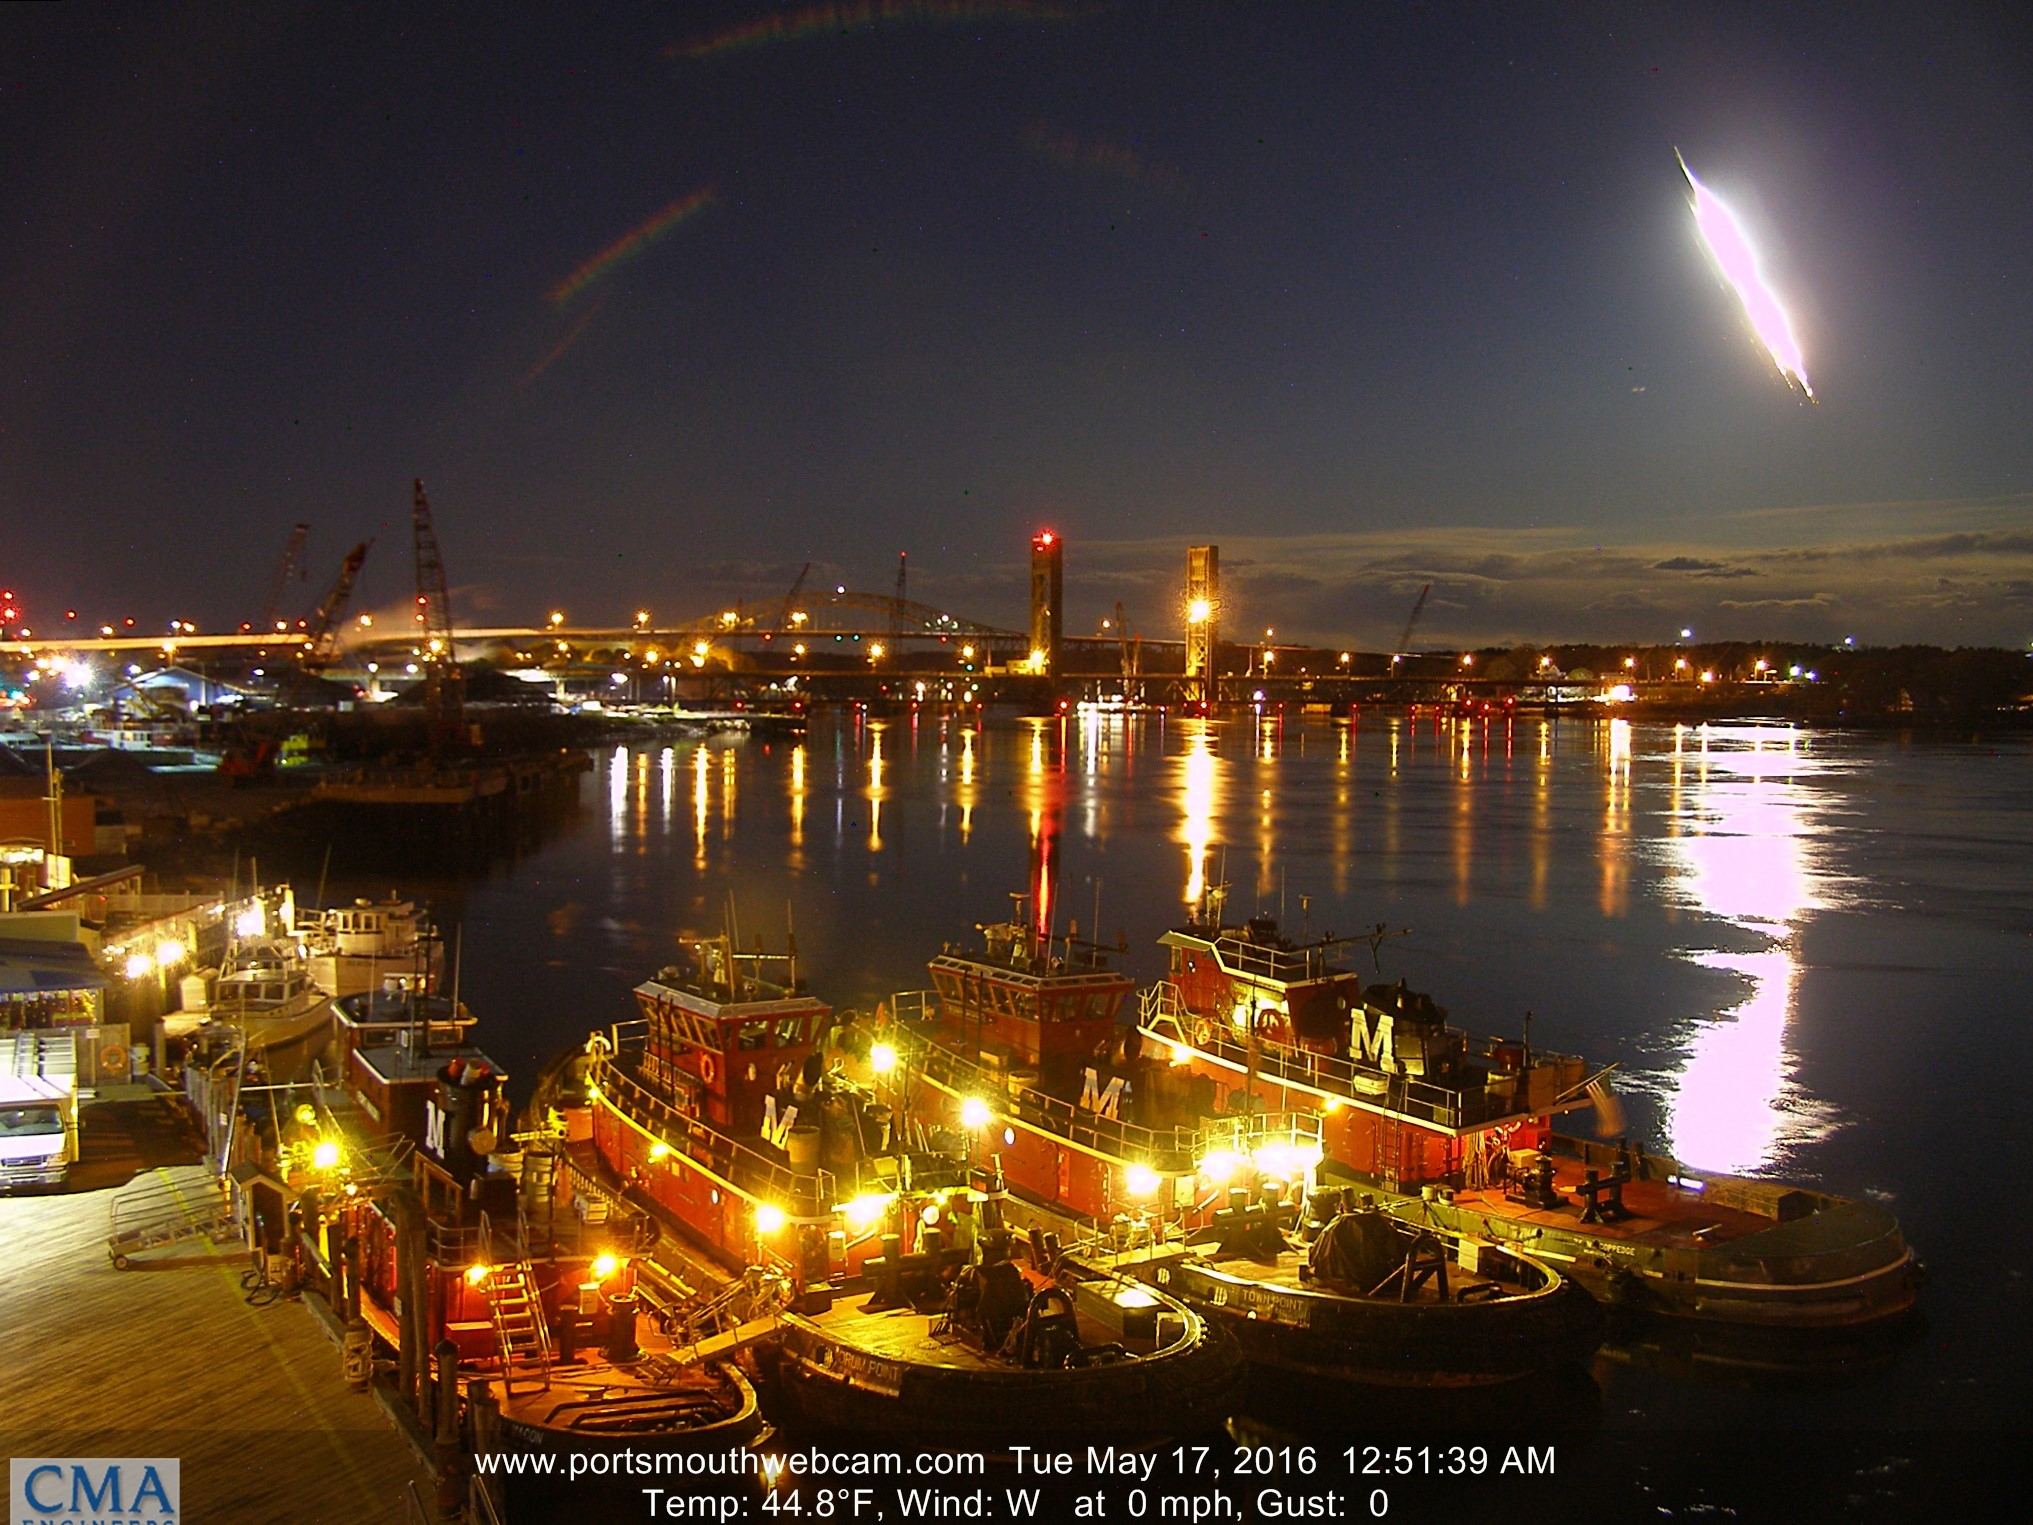 A dazzling fireball lights up the night sky over the Piscataqua River in Portsmouth, New Hampshire on May 17, 2016 in this stunning still image captured by a camera with Portsmouthwebcam.com and provided by Mike McCormack. The meteor was widely visible ac